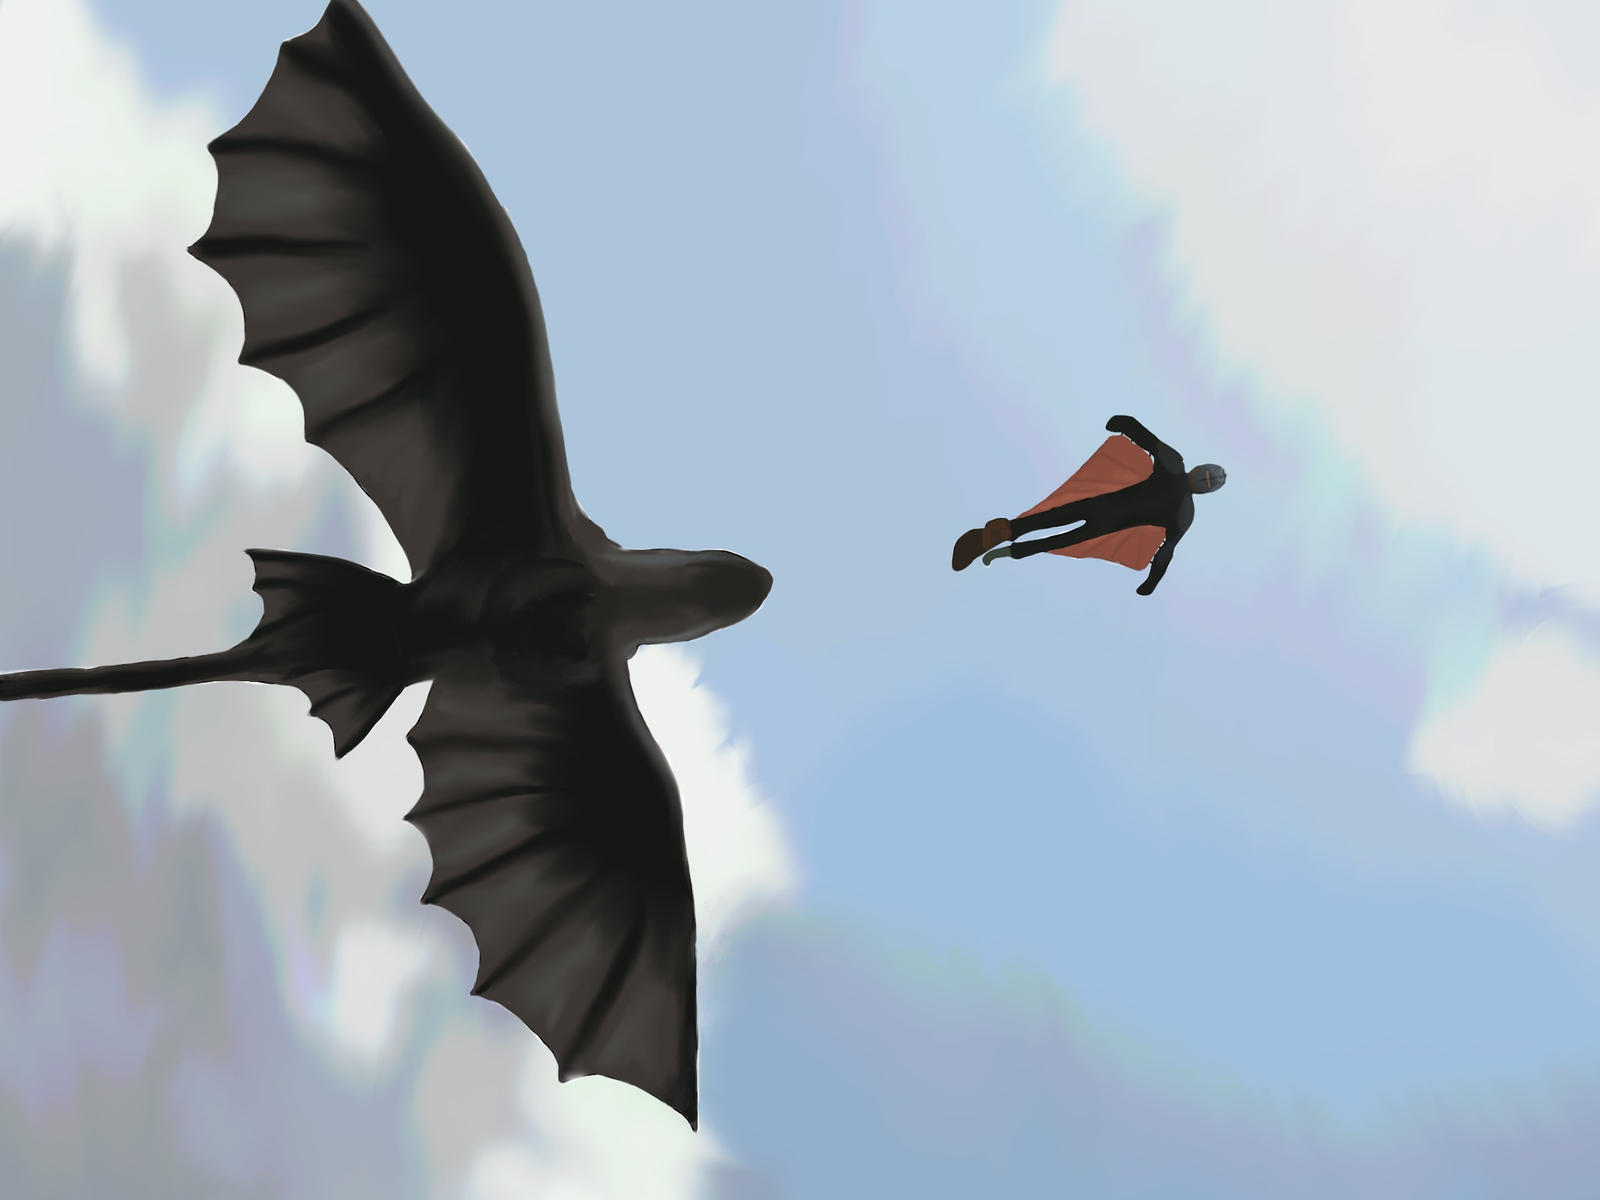 Toothless and Hiccup flying by BlazeOfPhoenix on DeviantArt